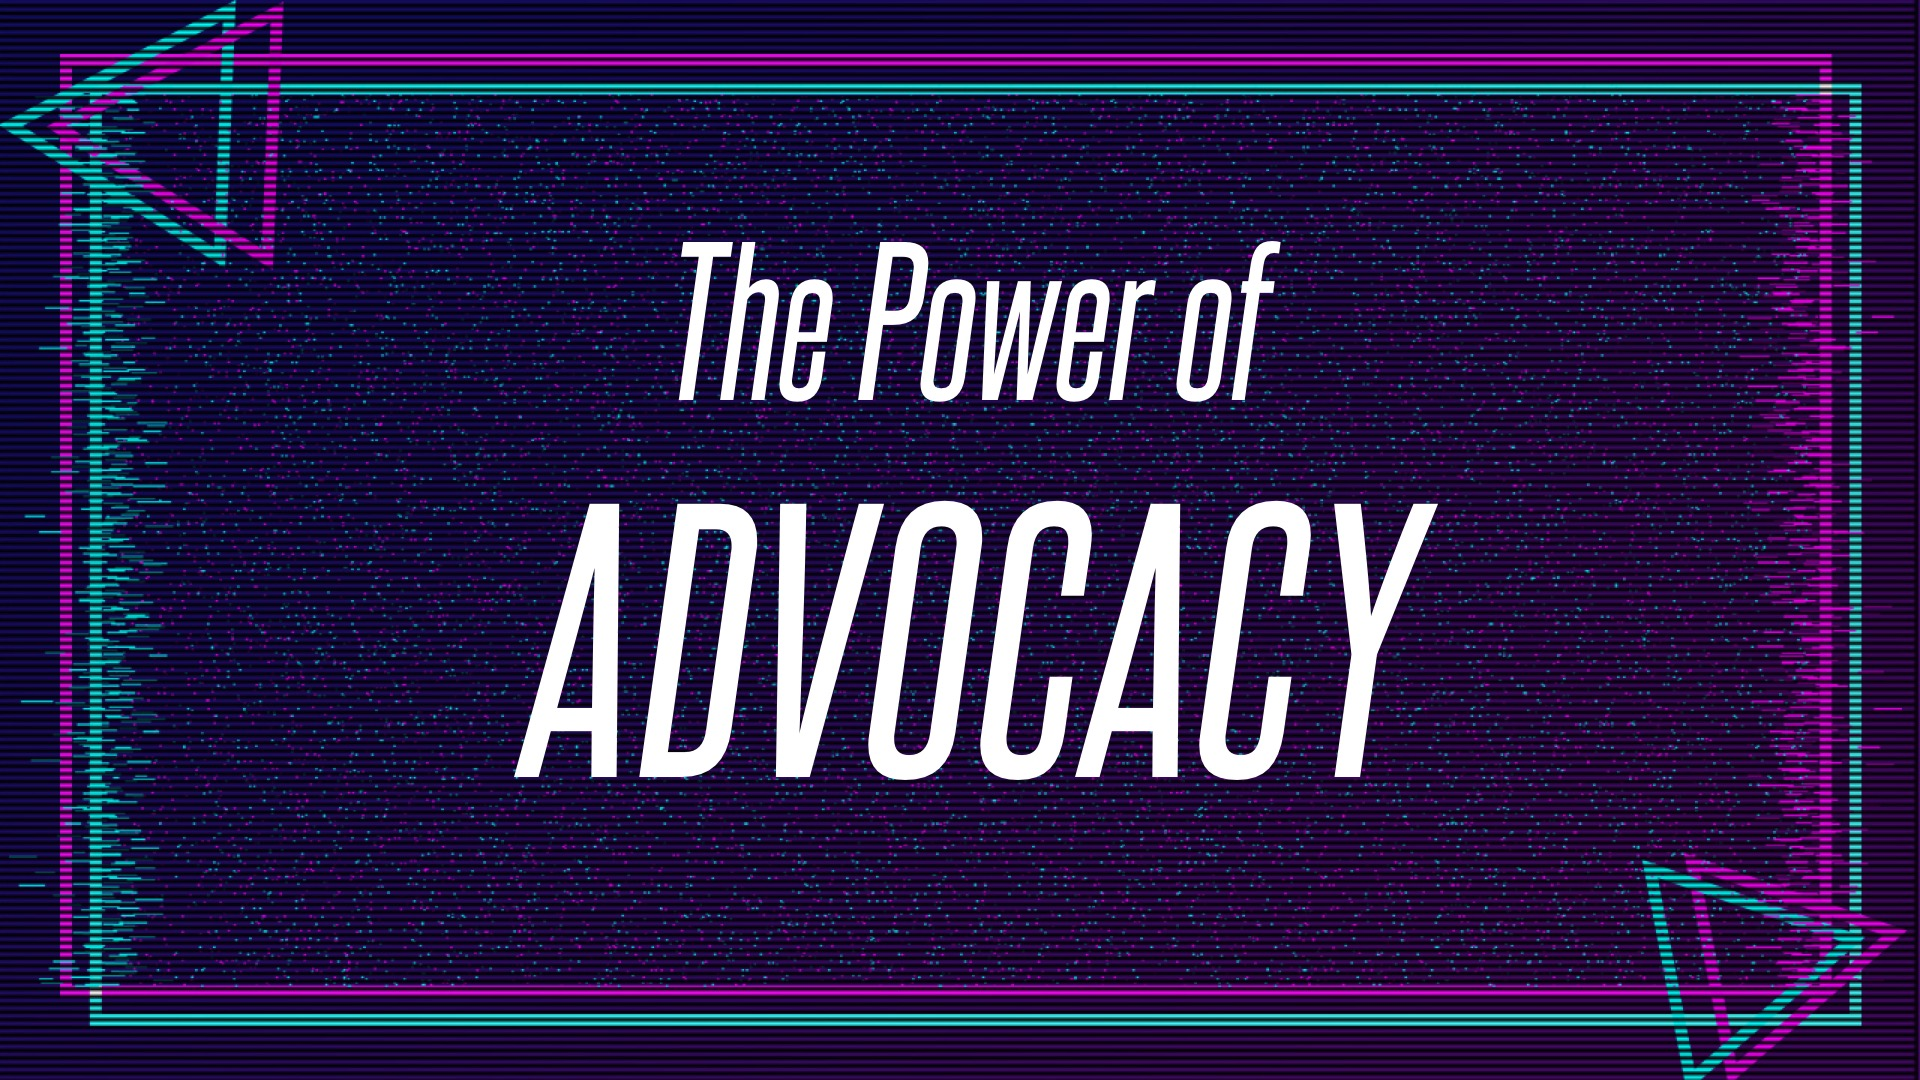 The Power of Advocacy